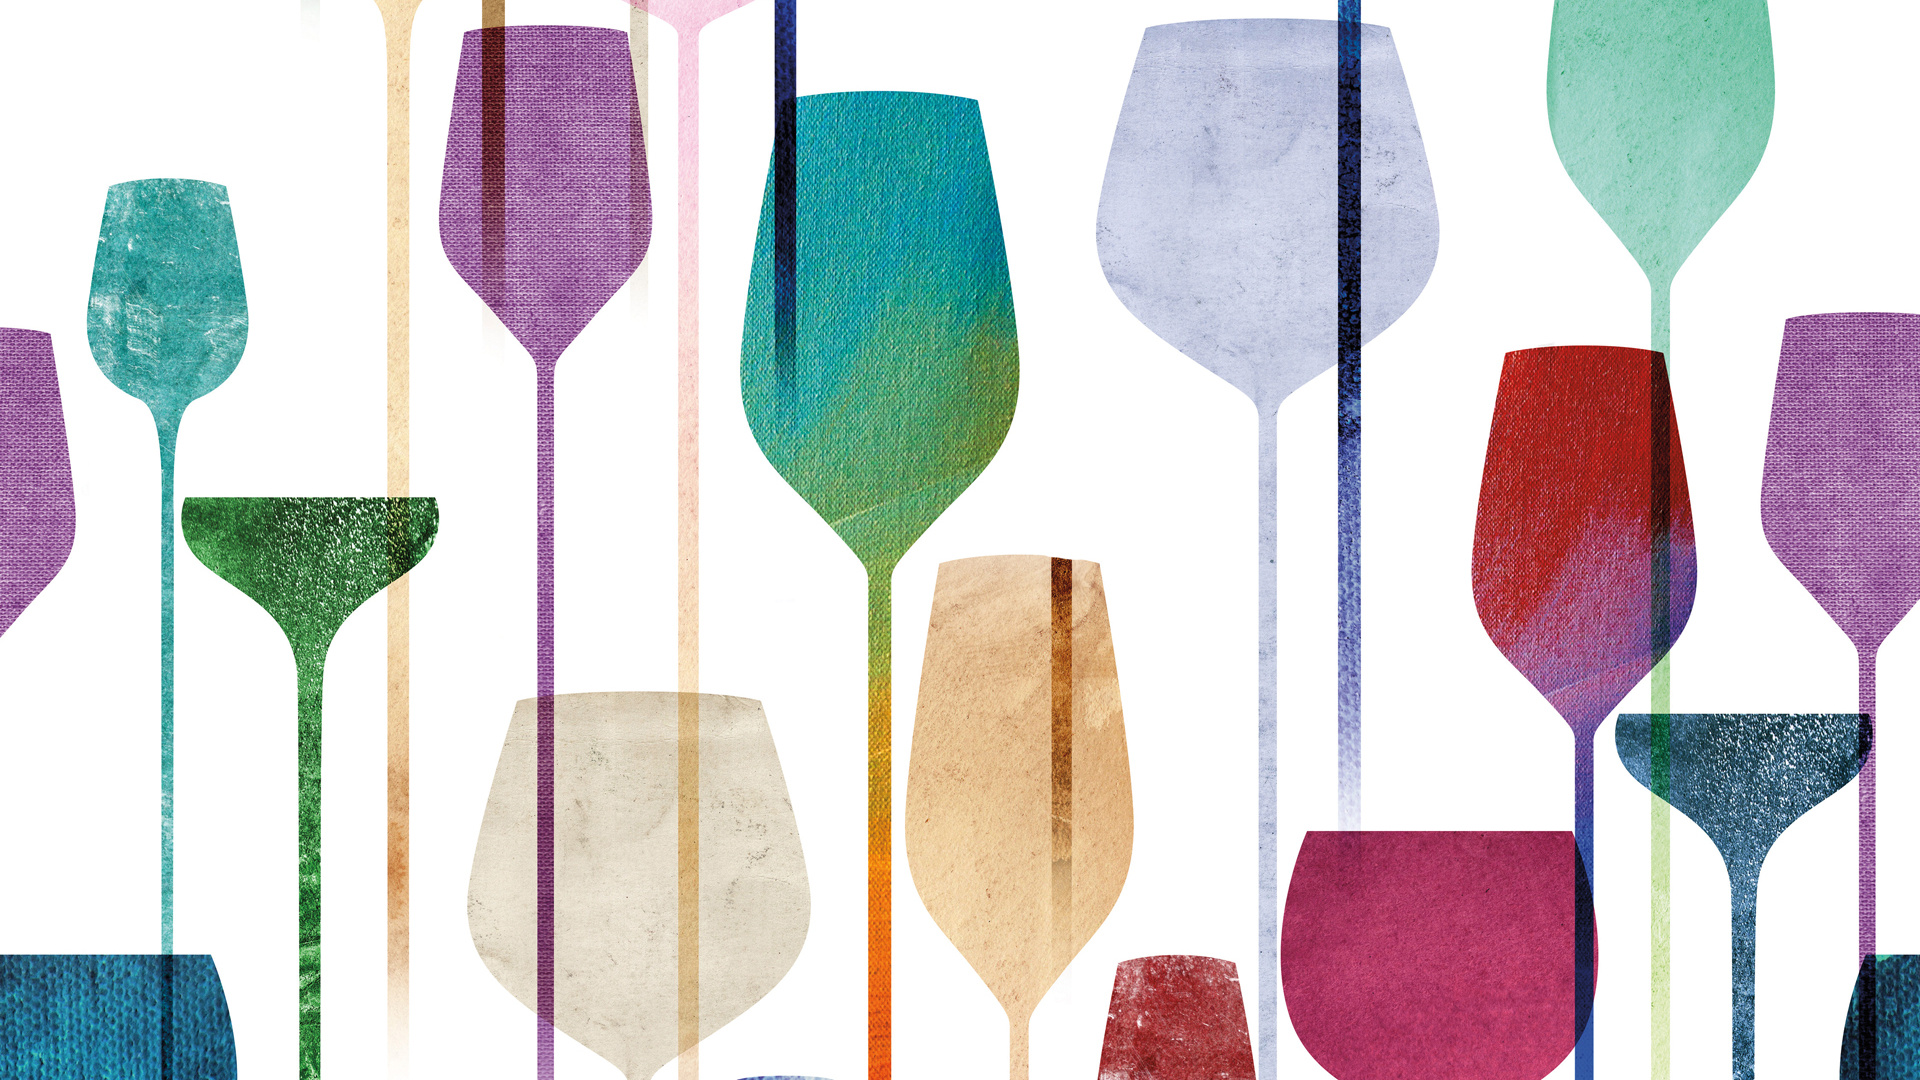 All the do's and don'ts of glassware